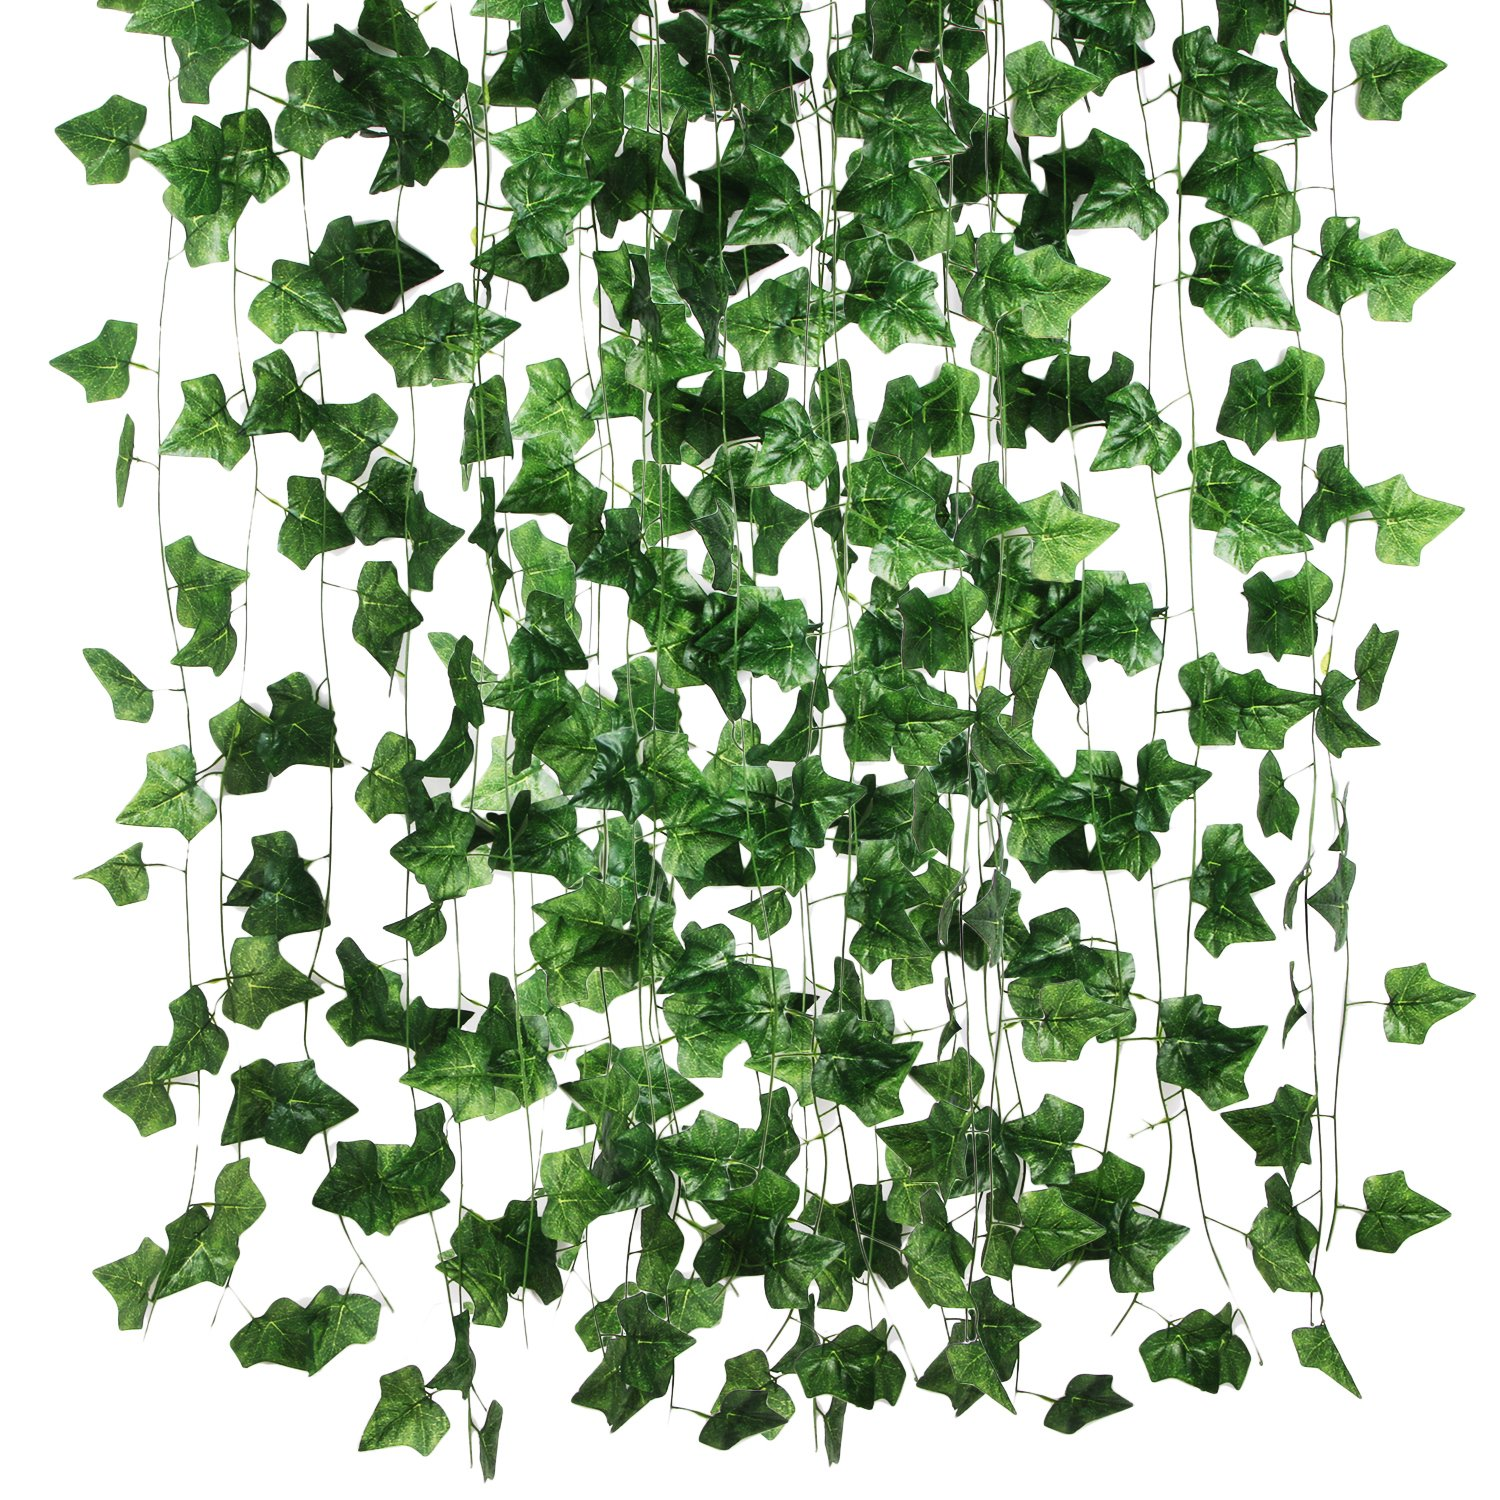 87 Feet-12 Pack Artificial Ivy Leaf Garland Plants Vine for Hanging Wedding Garland Fake Foliage Flowers Home Kitchen Garden Office Wedding Wall Decor Hecaty